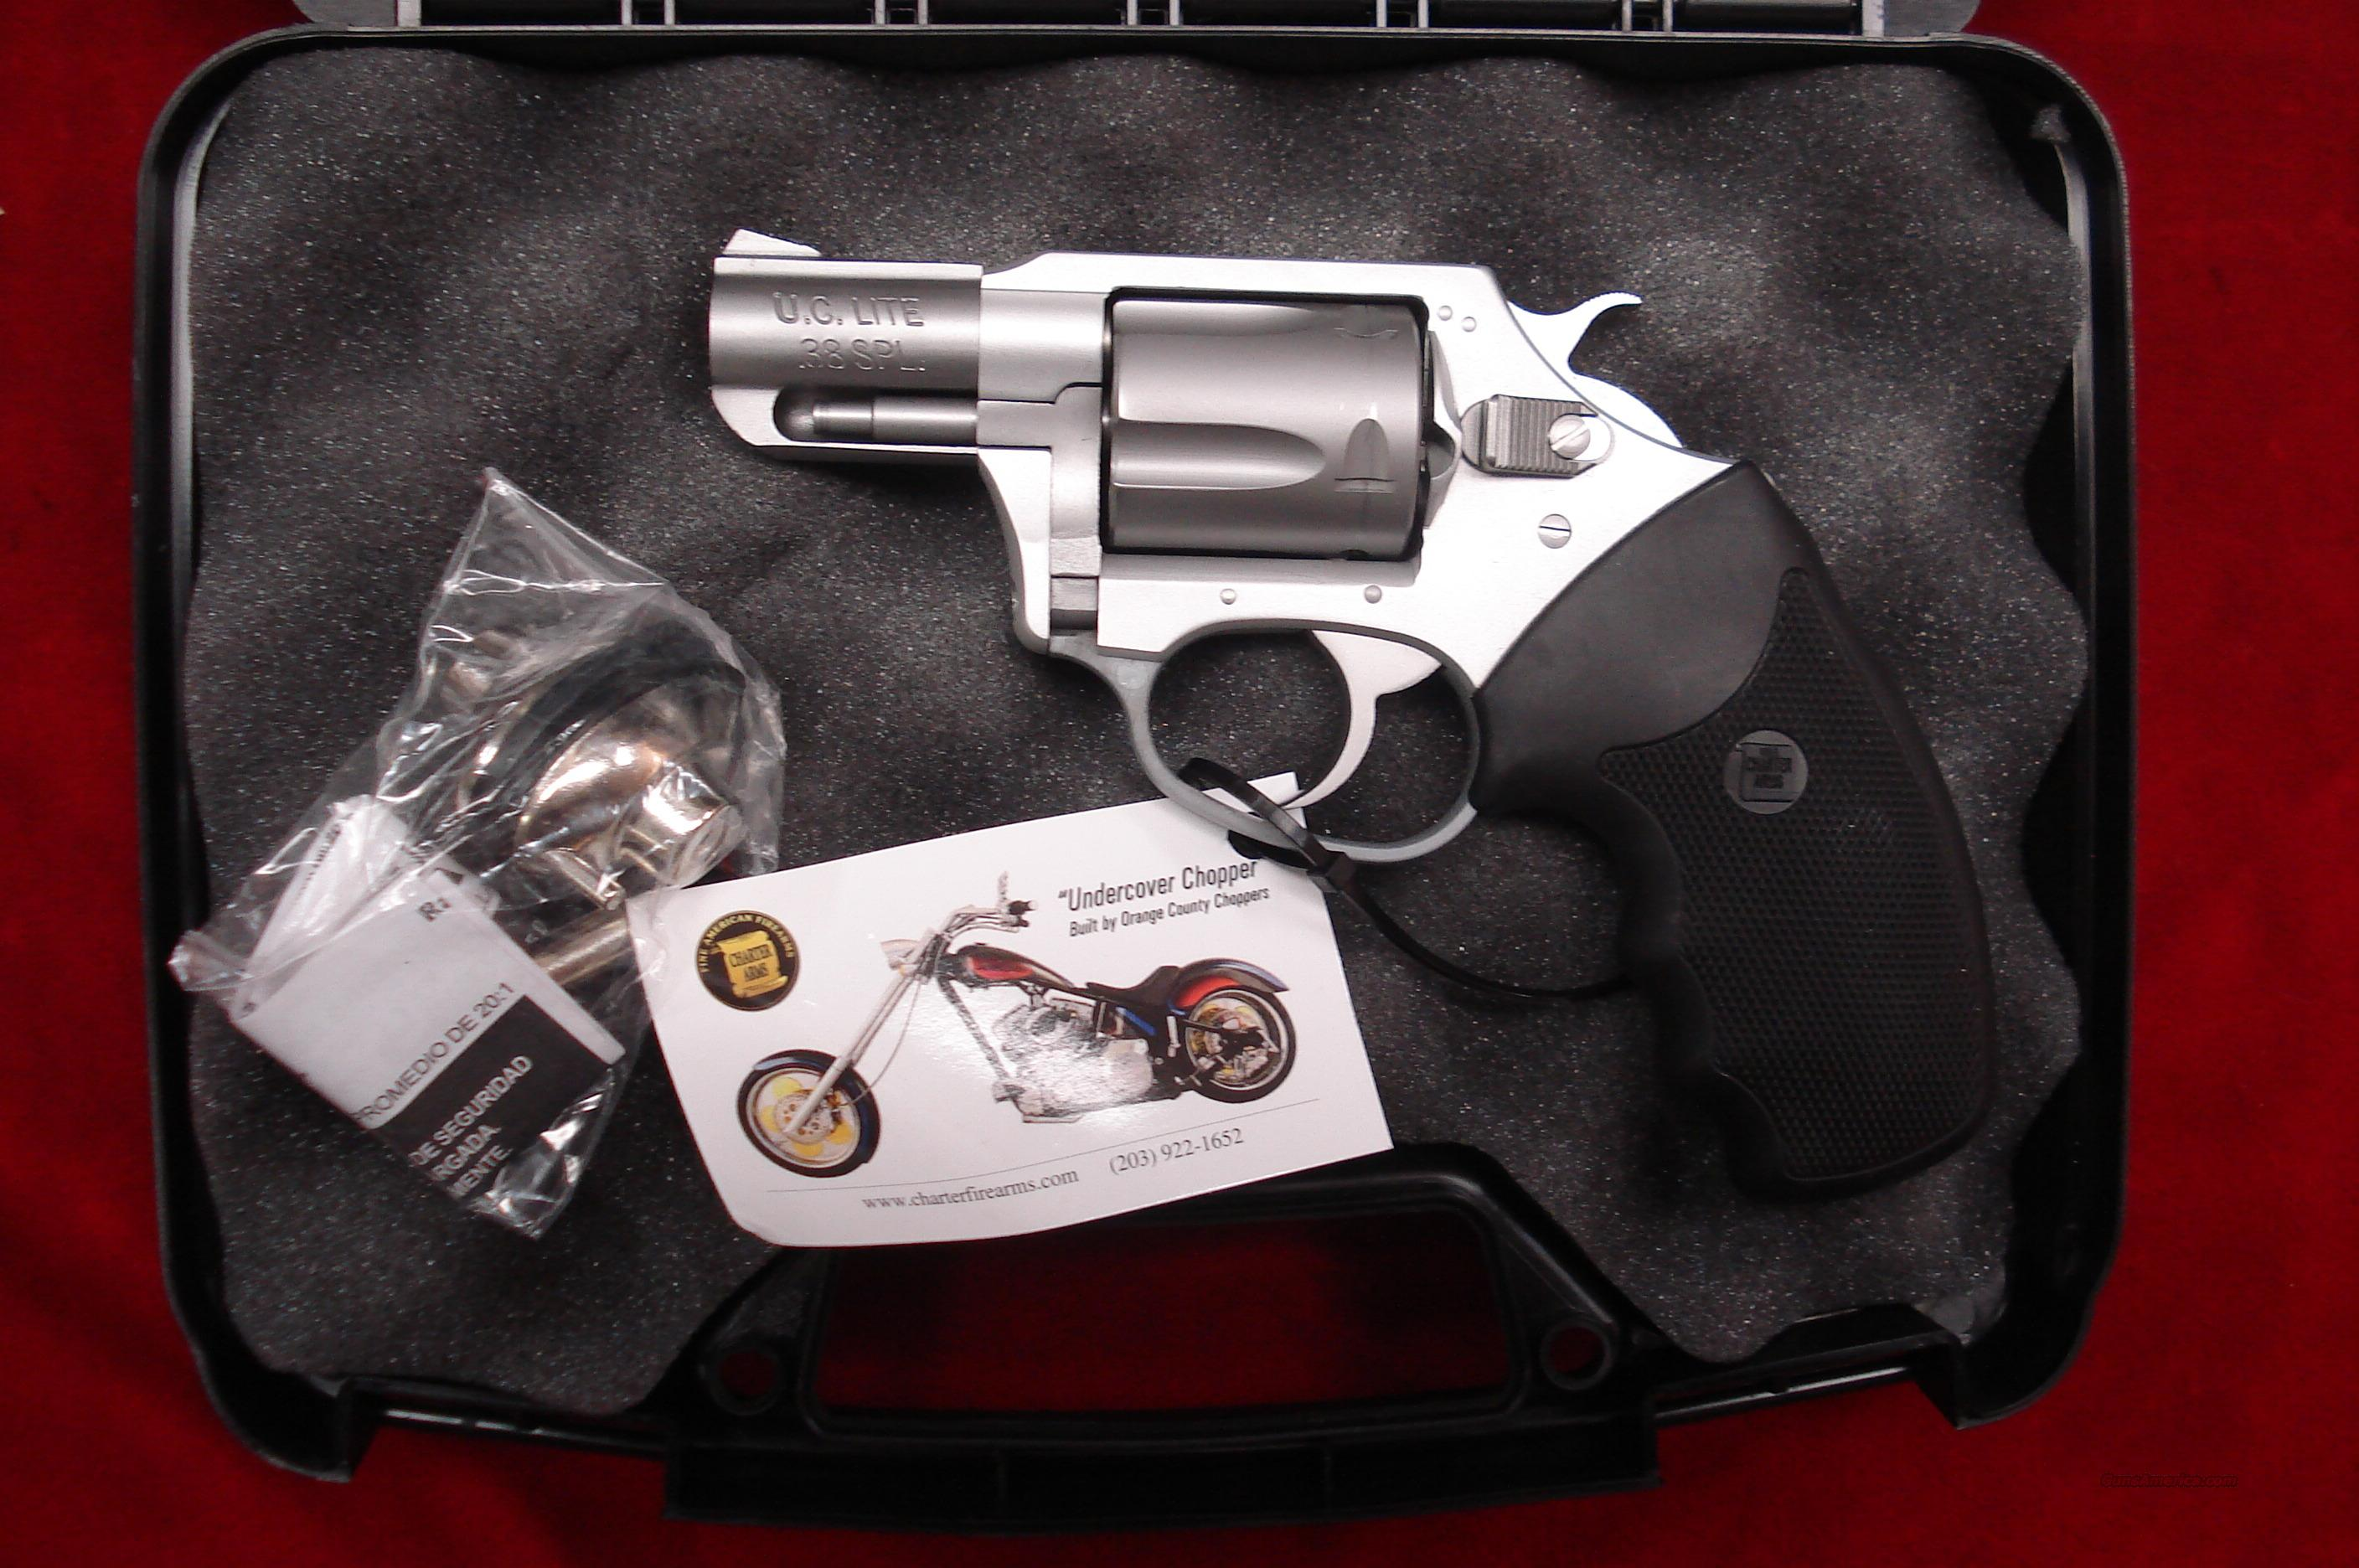 CHARTER ARMS UNDERCOVER LITE STAINLESS 38 SPECIAL NEW  Guns > Pistols > Charter Arms Revolvers